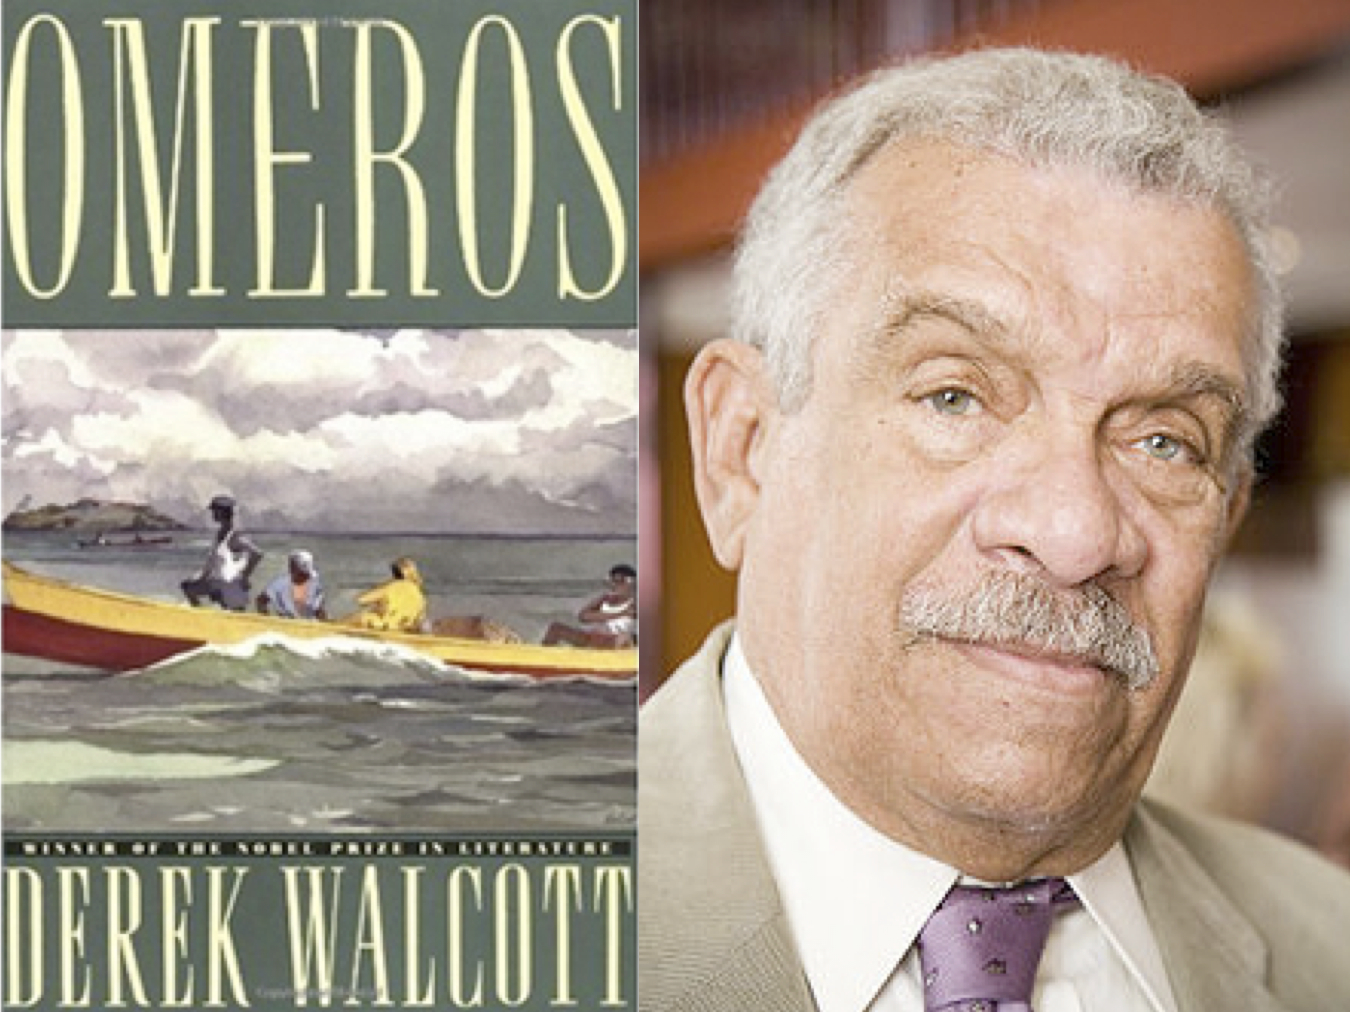 derek walcott uses poetry to explore themes of ethnicity essay Derek walcotrt personal response derek walcott sample essay of all the poets on the leaving cert course derek walcott was my favourite to study his poetry appeals to me for a number of reasons, such as the way he deals with the notion of ending, death, bereavement, love, religion and colonialism.